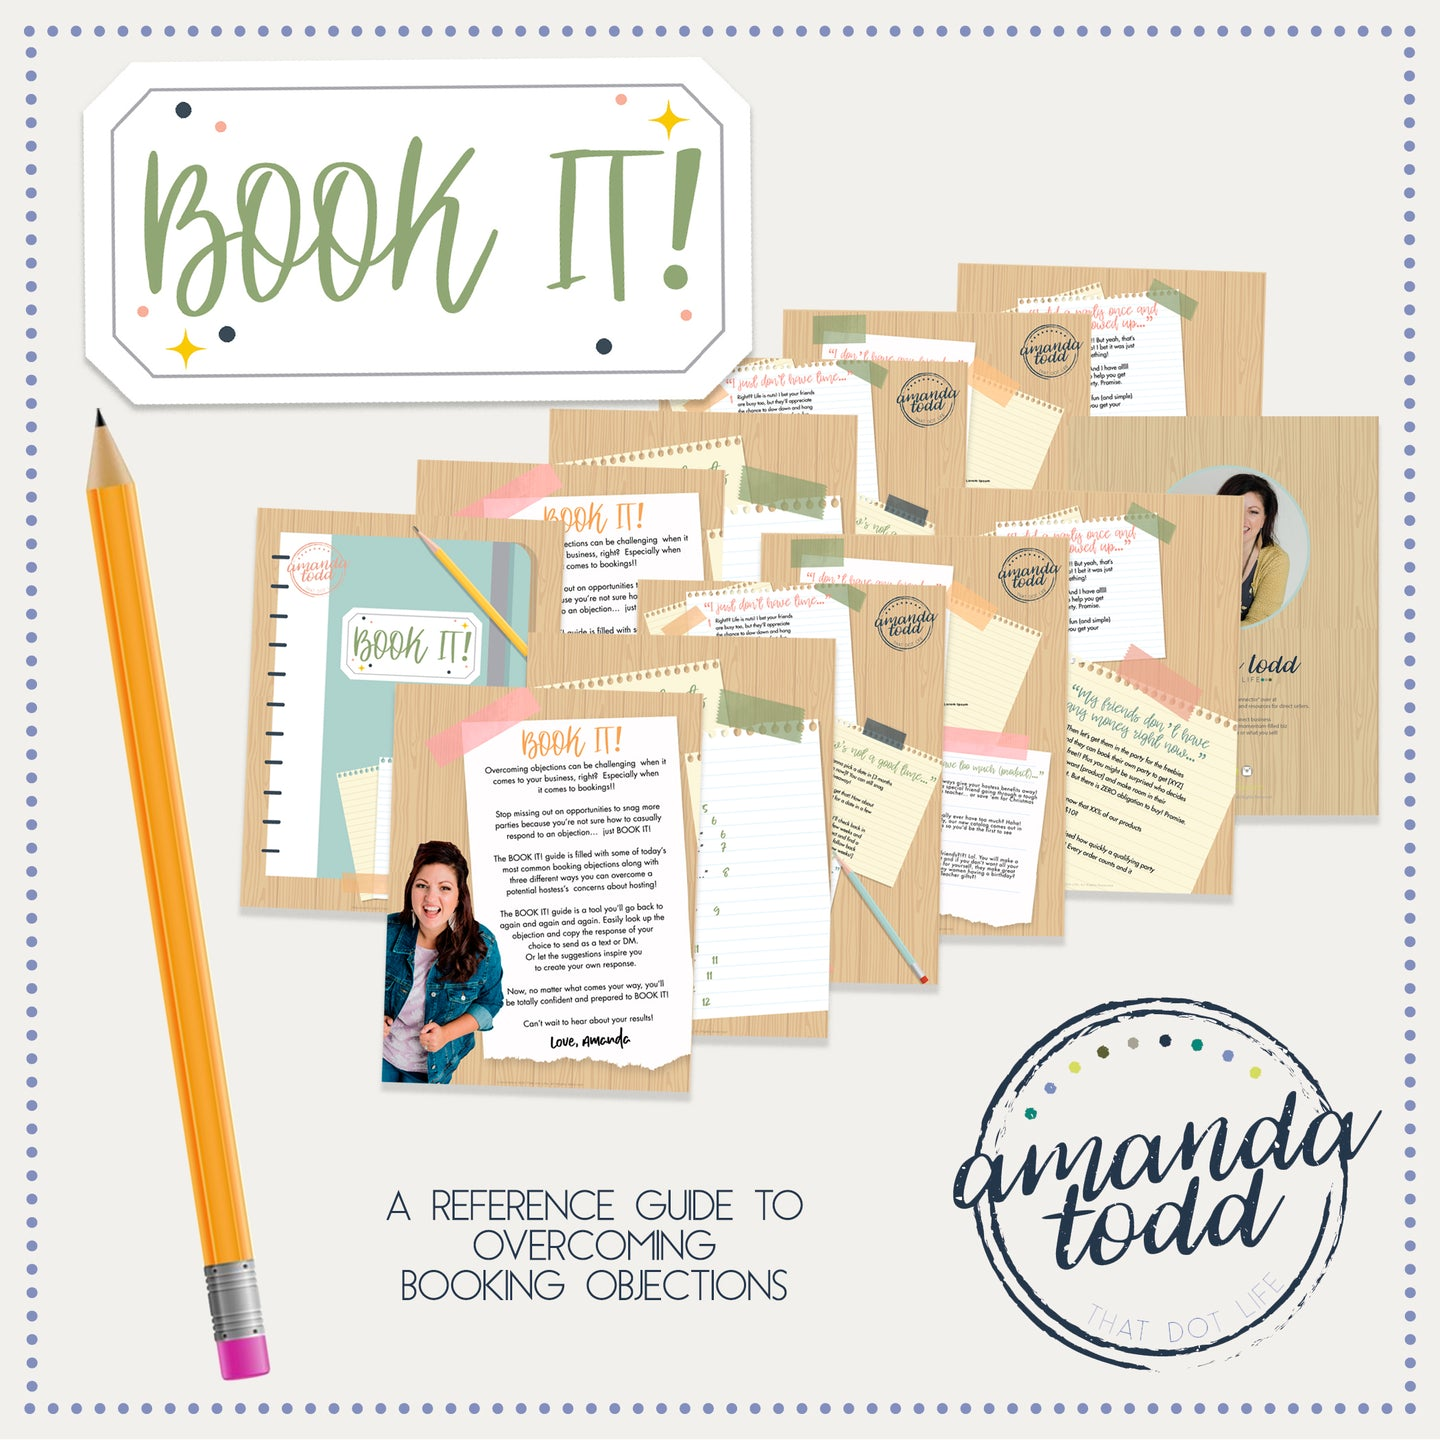 BOOK IT! Resource Guide